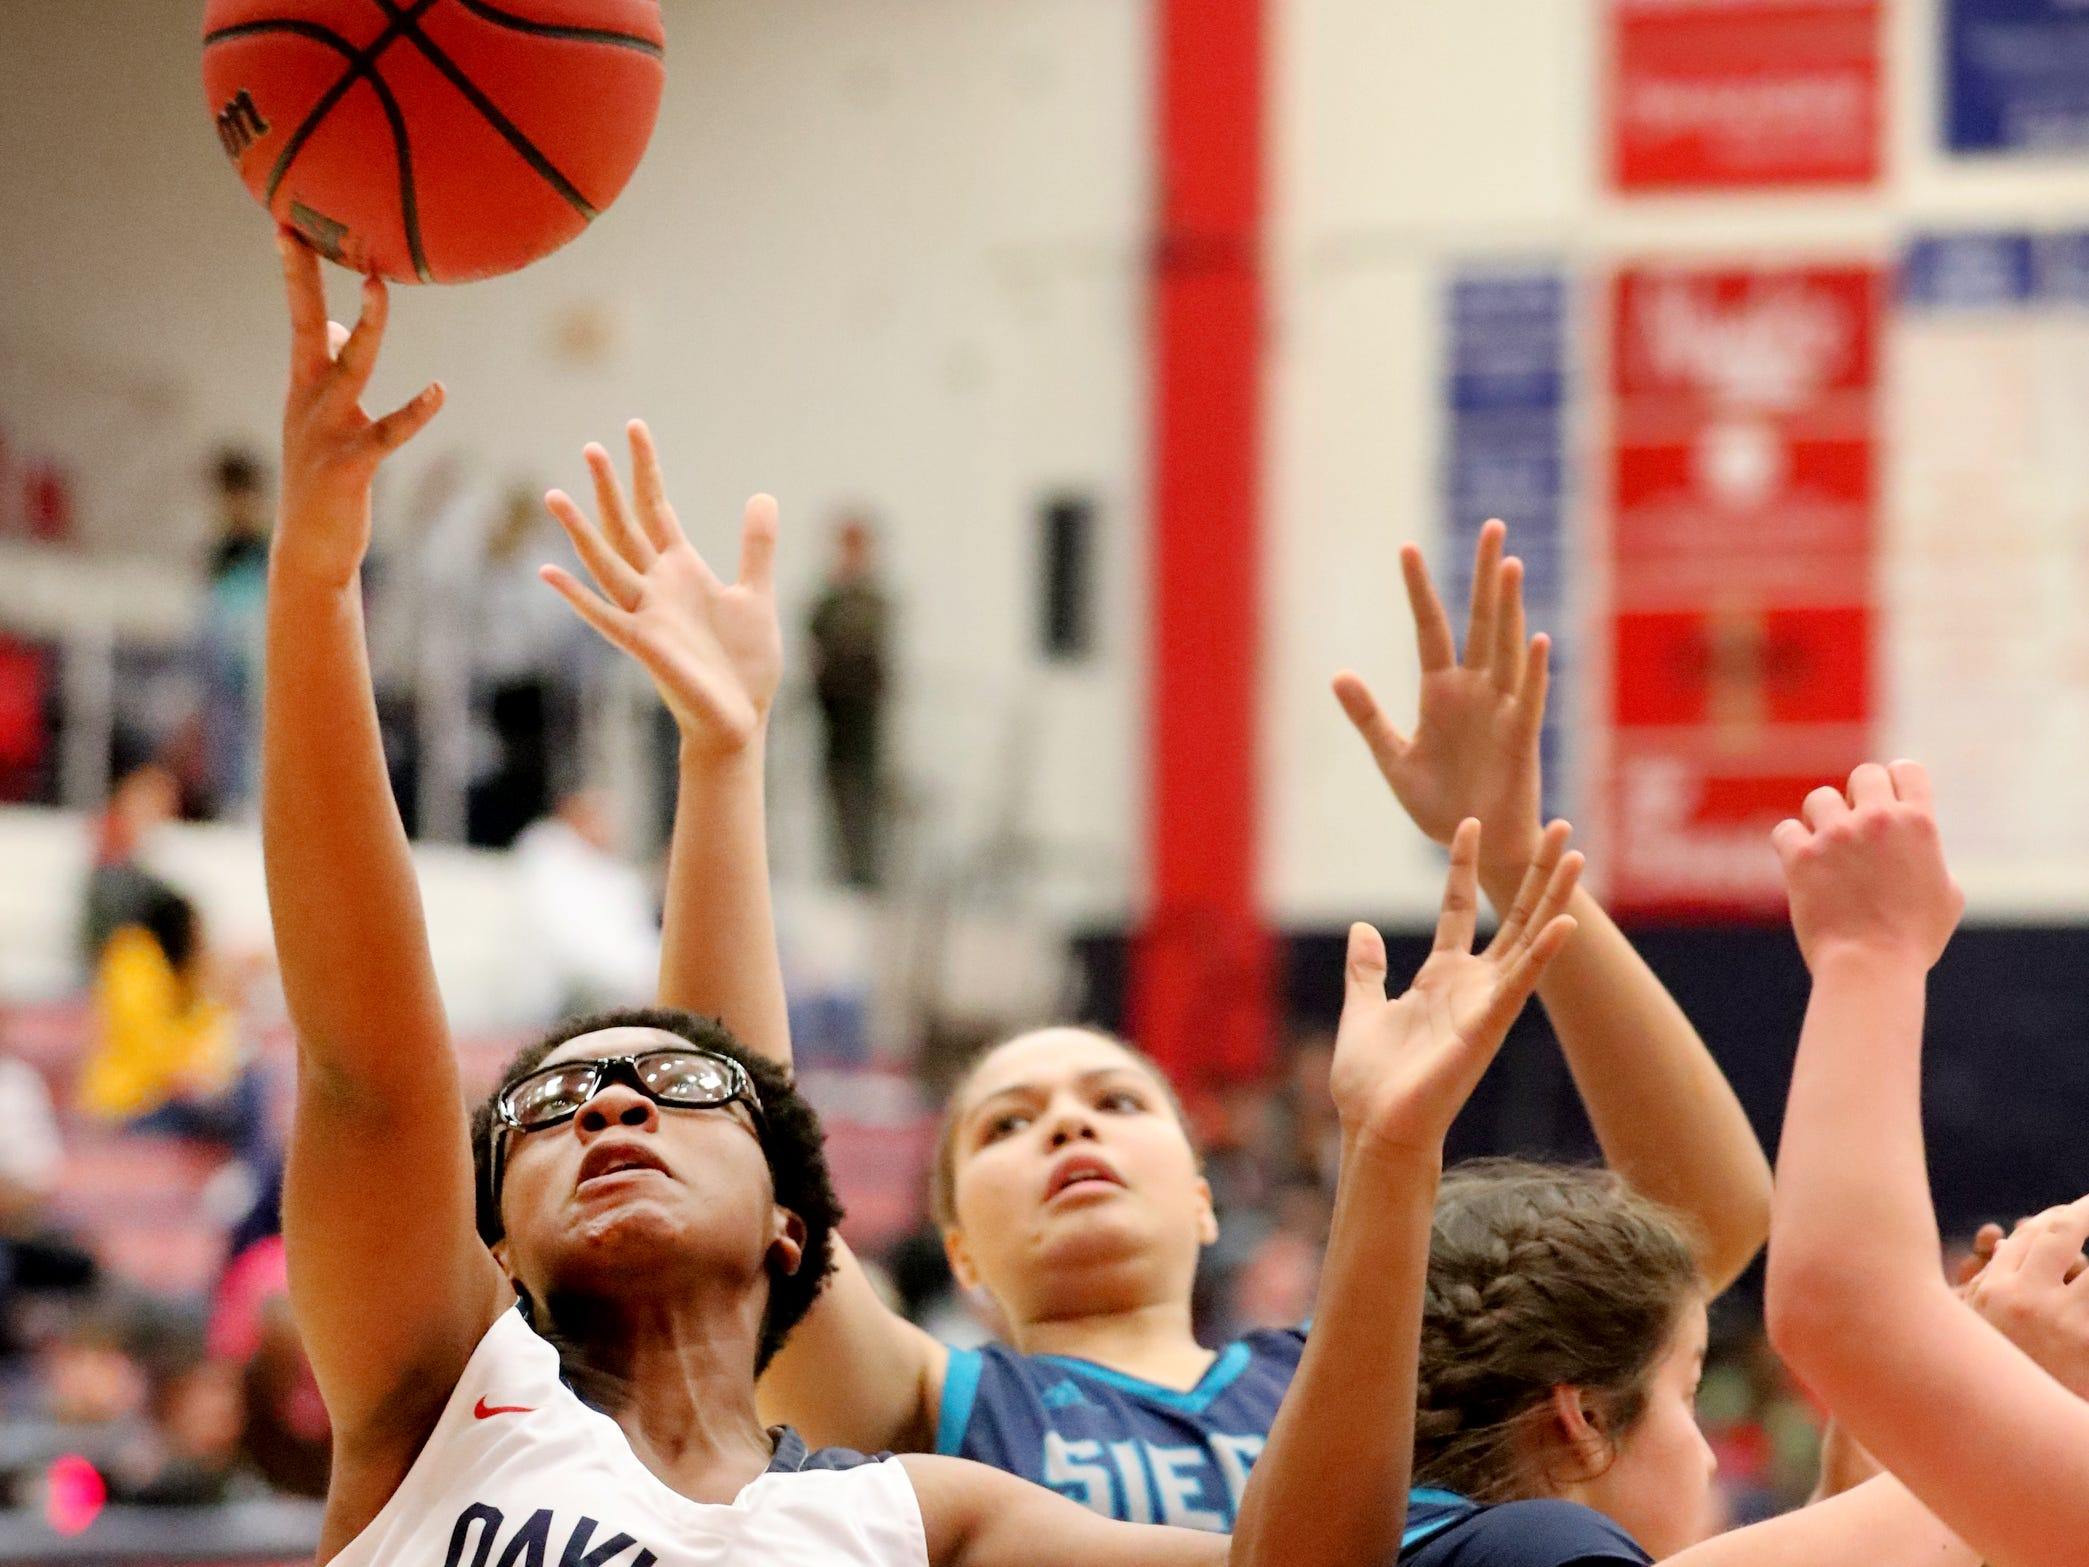 Oakland's Nicole Egeruoh (42) goes after a rebound as Siegel's Erin Vanhook (42) and Genesis Sneed (40) also fight for the rebound on Tuesday, Dec. 4, 2018.